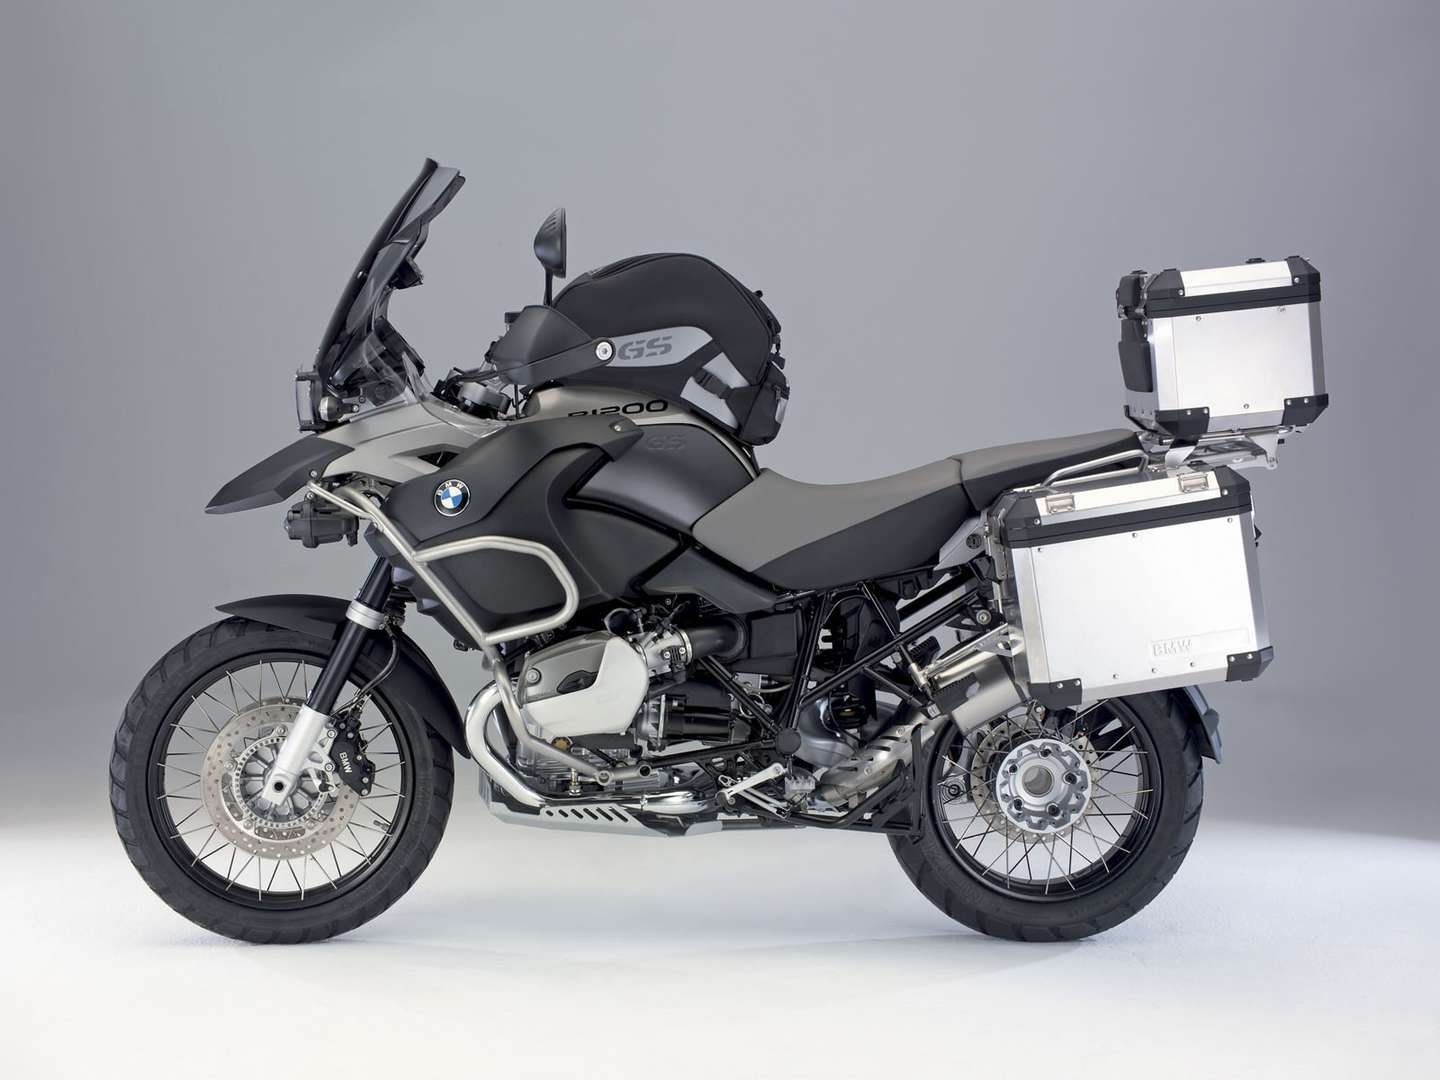 BMW R 1200 GS Adventure #9707397